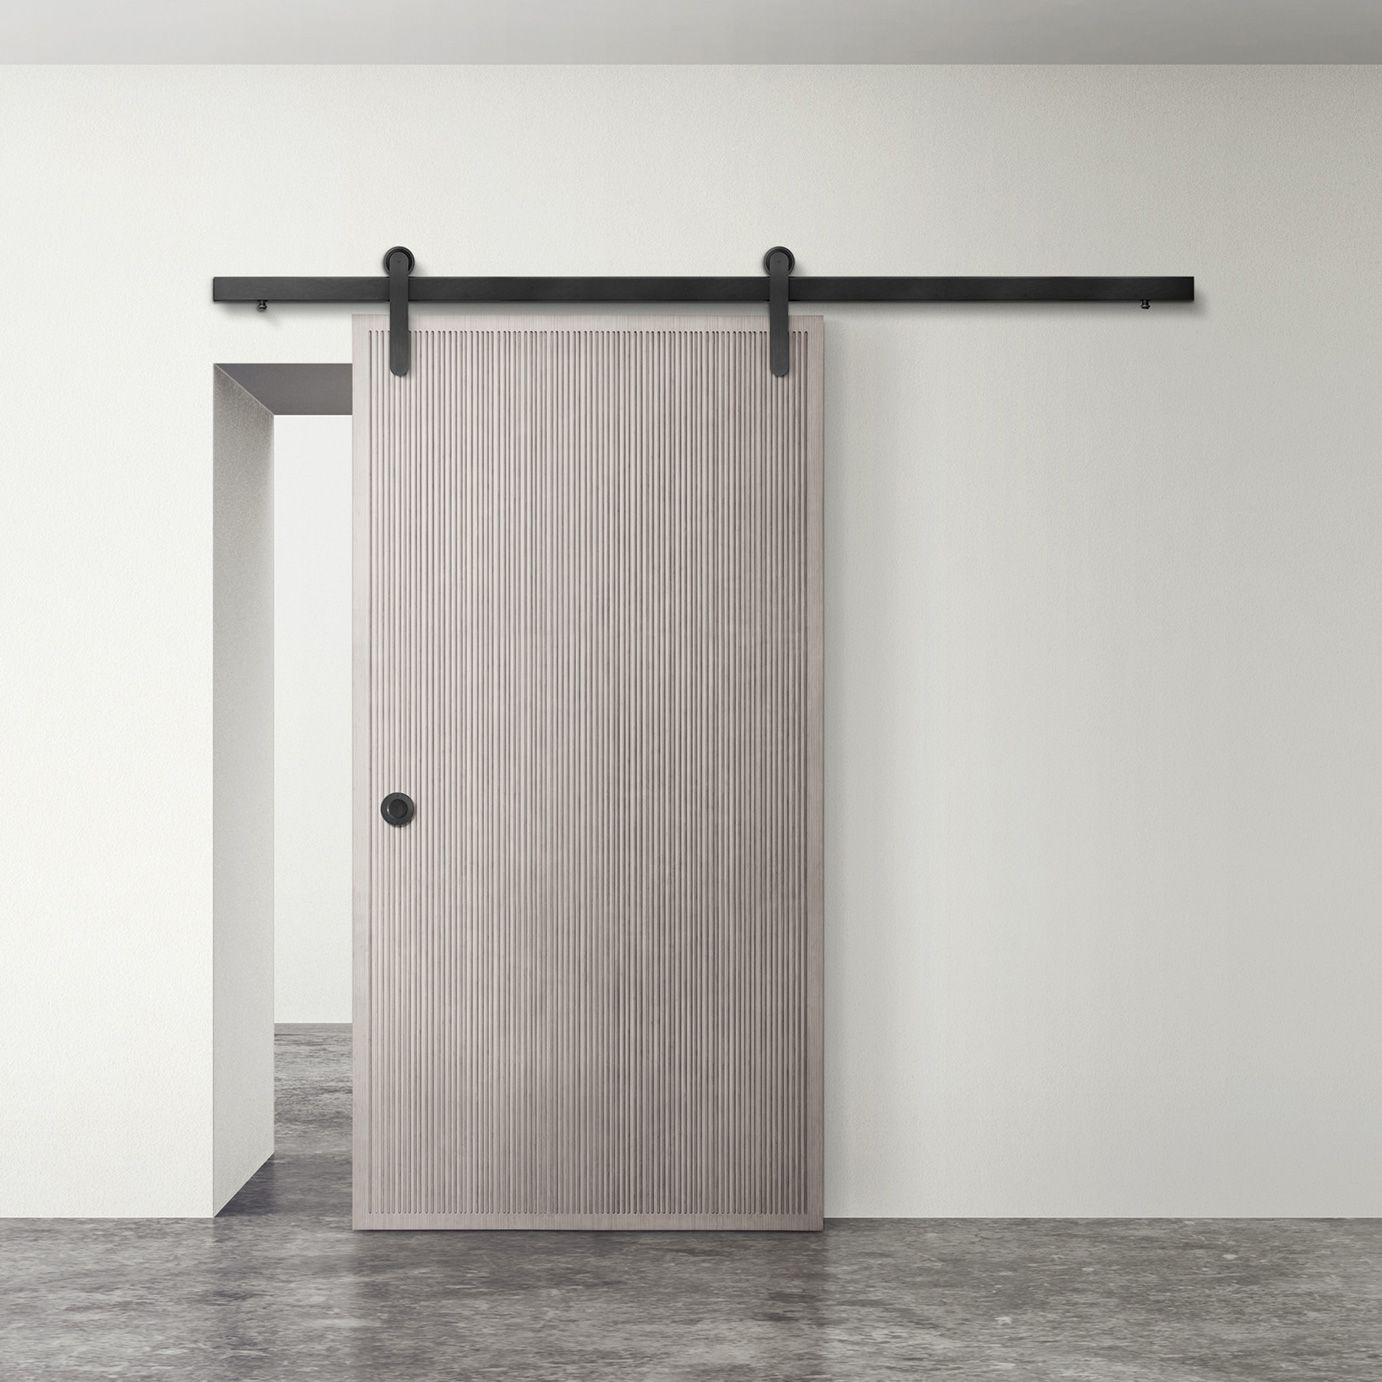 Krownlab Teamed Up With Smith Fong To Create Plyboodoors A Line Of Highly Customizable Completely One Of A Kin Doors Sliding Door Hardware Barn Doors Sliding